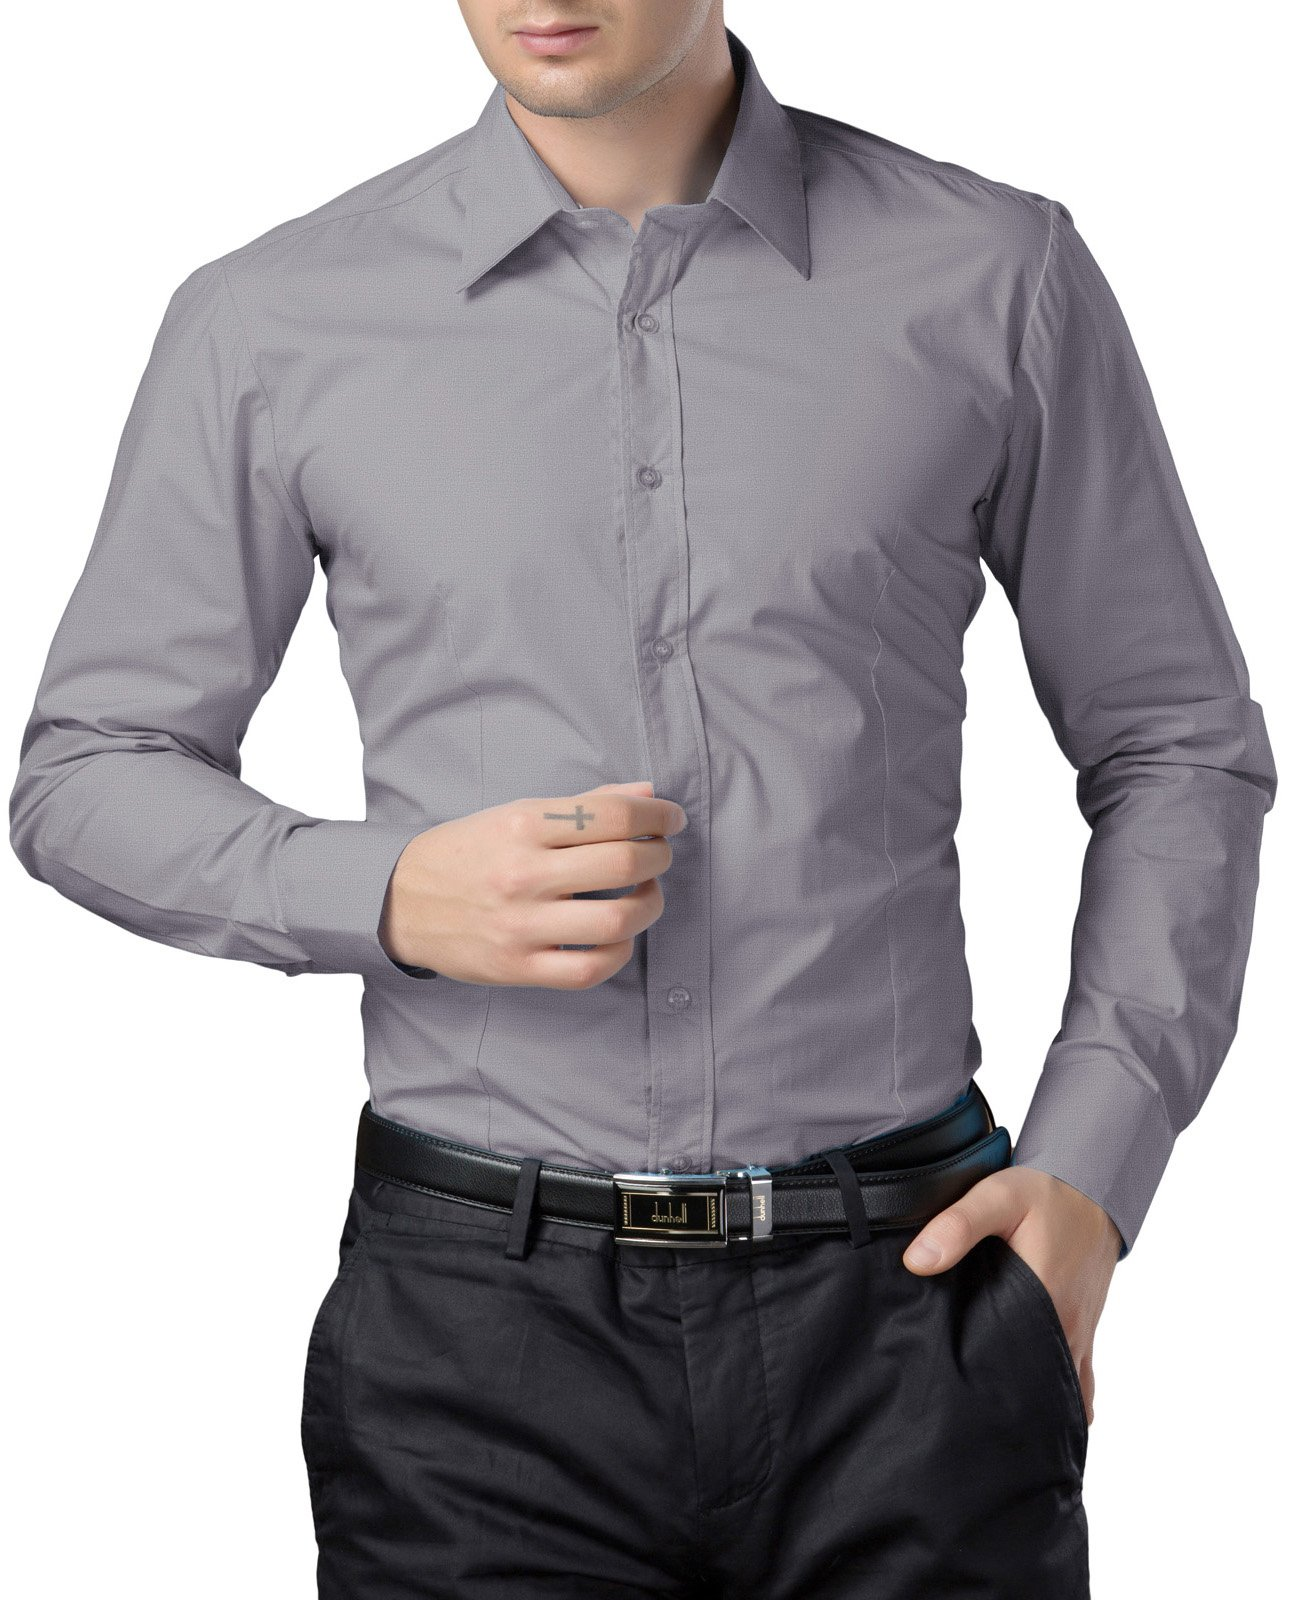 Casual Solid Grey Dress Shirt for Men Slim Fit  CL1044-8,Grey-cl1044,Large